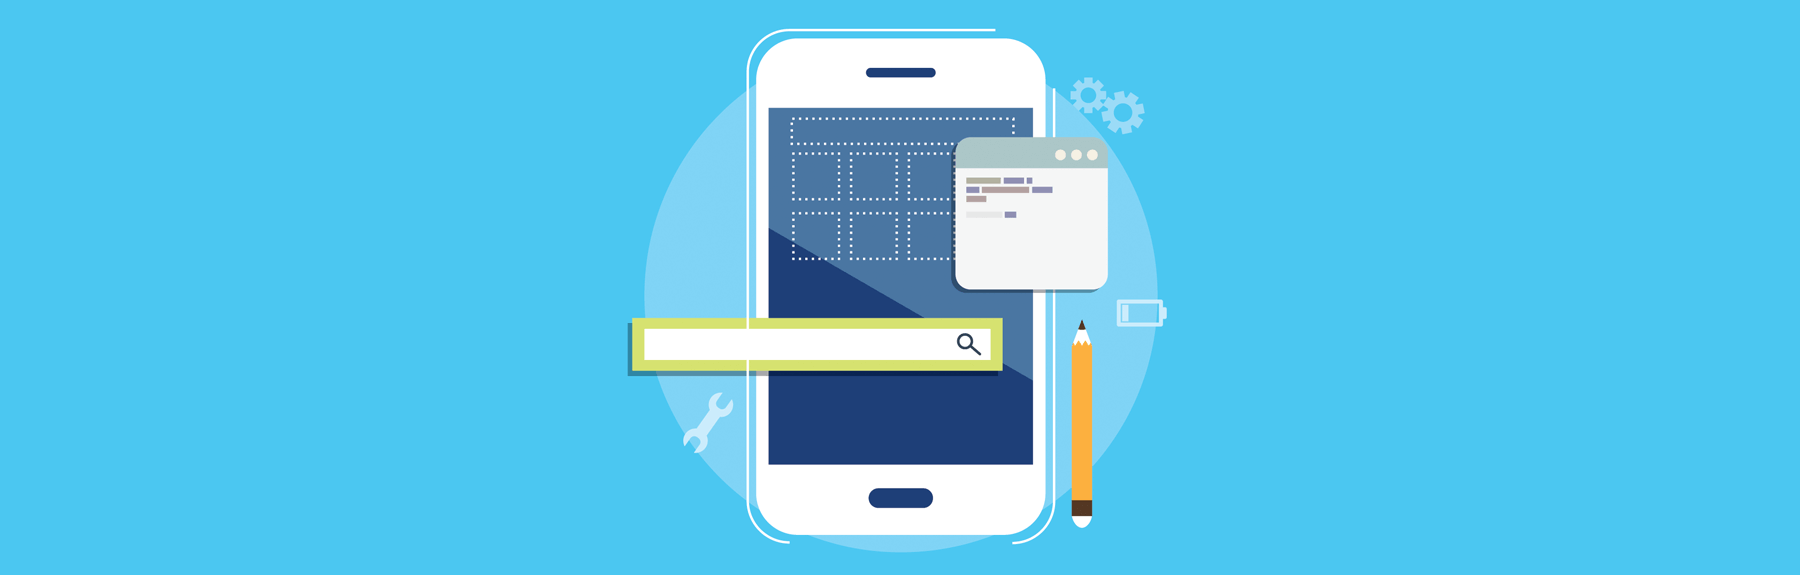 mobile-ui-prototyping-what-not-to-do